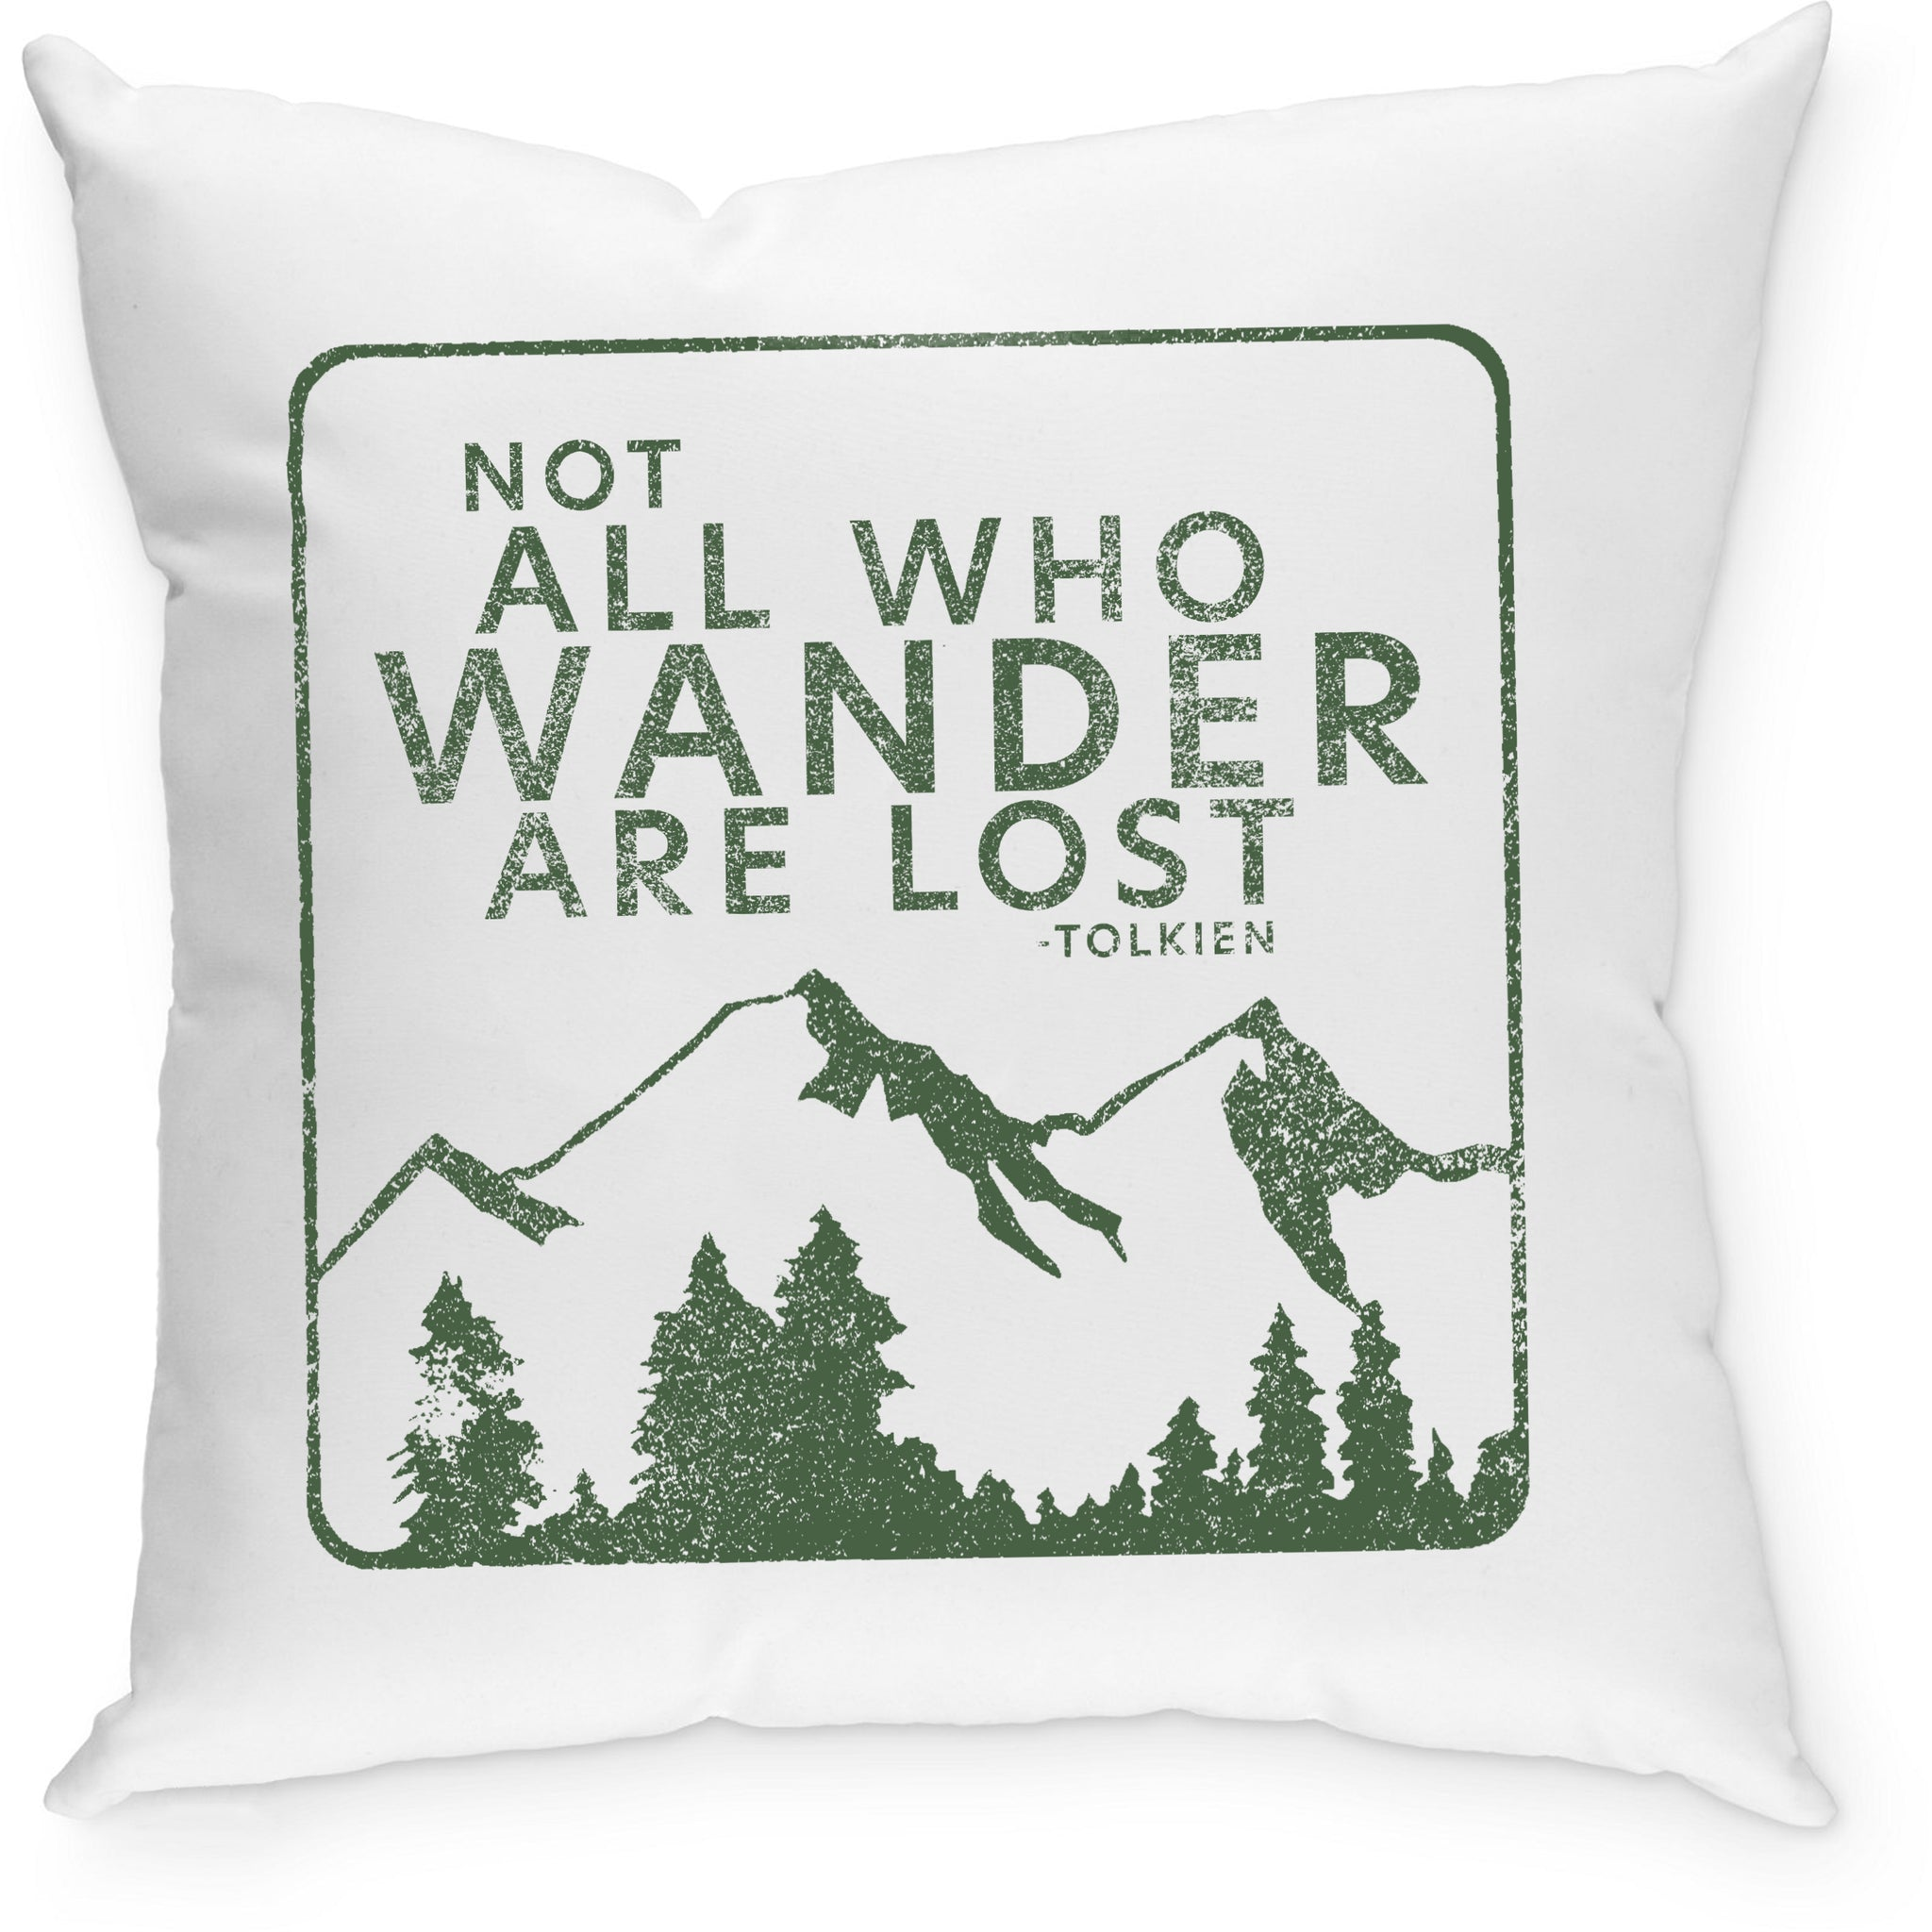 Sevenly - Cotton Canvas Down Throw Pillow - Not All Who Wander Are Lost